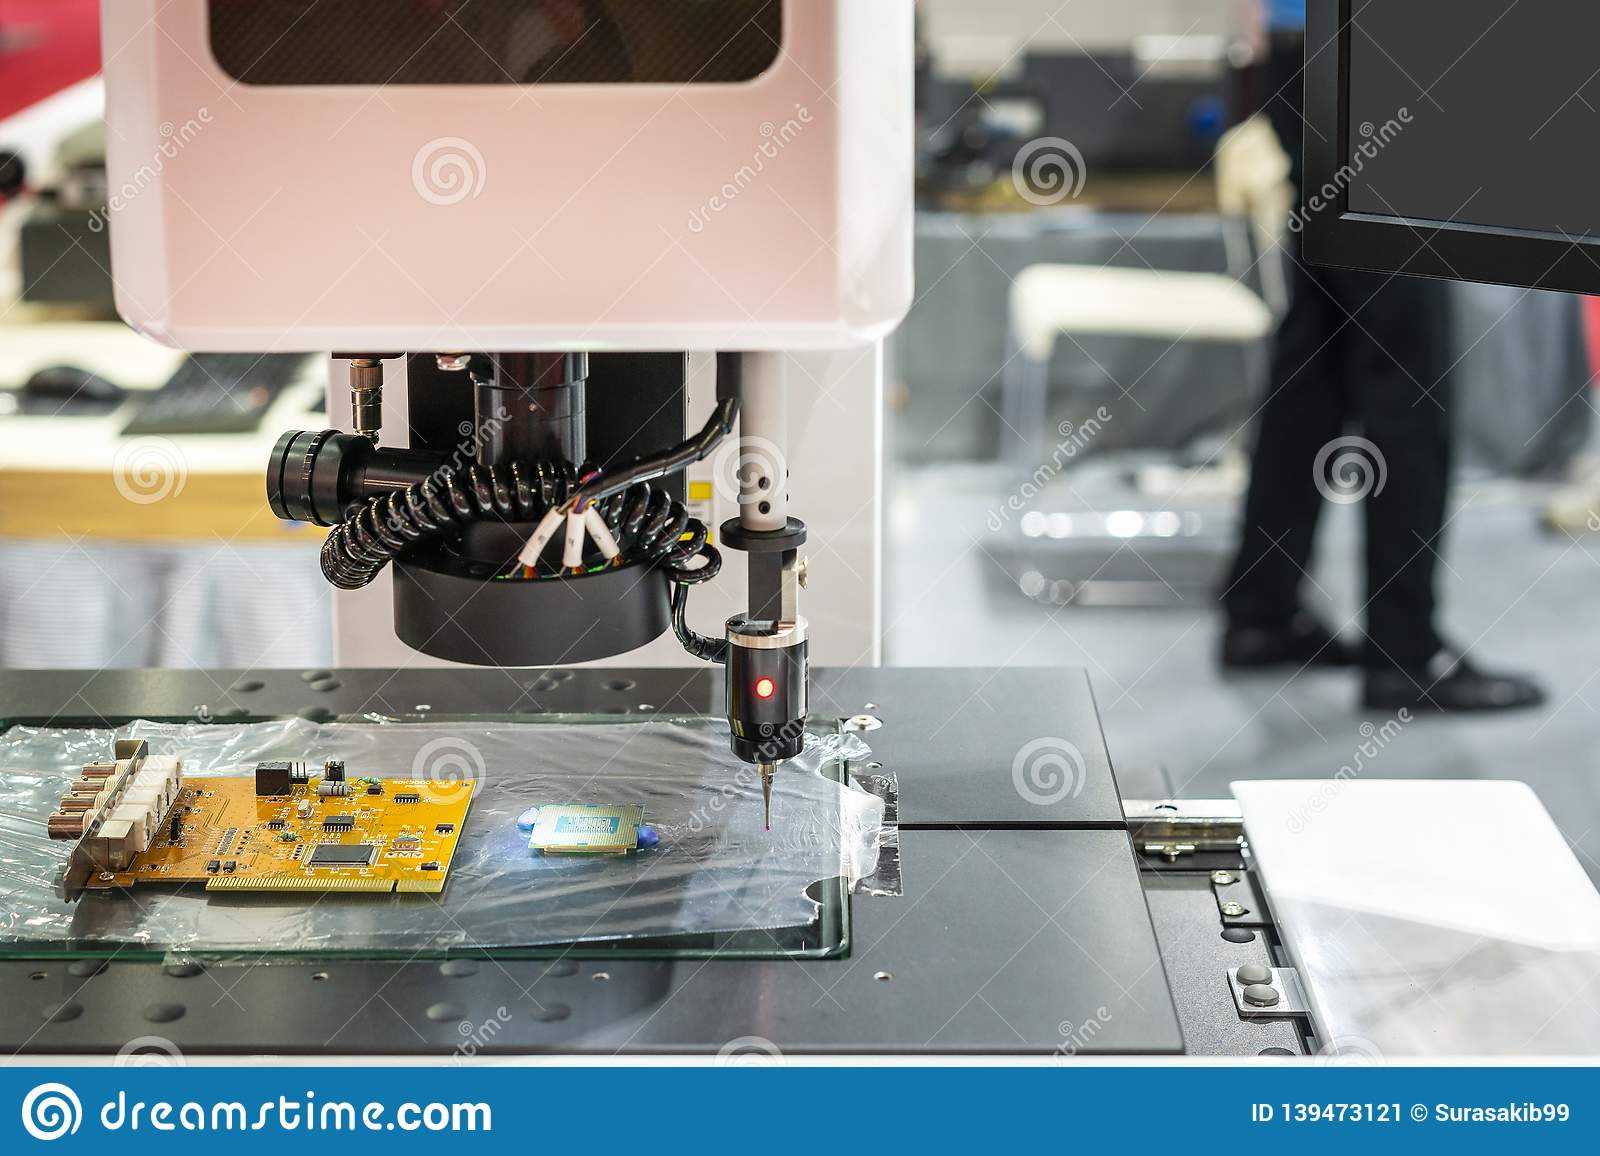 High technology precision visual and measuring machine for quality dimension and shape appearance control in industrial